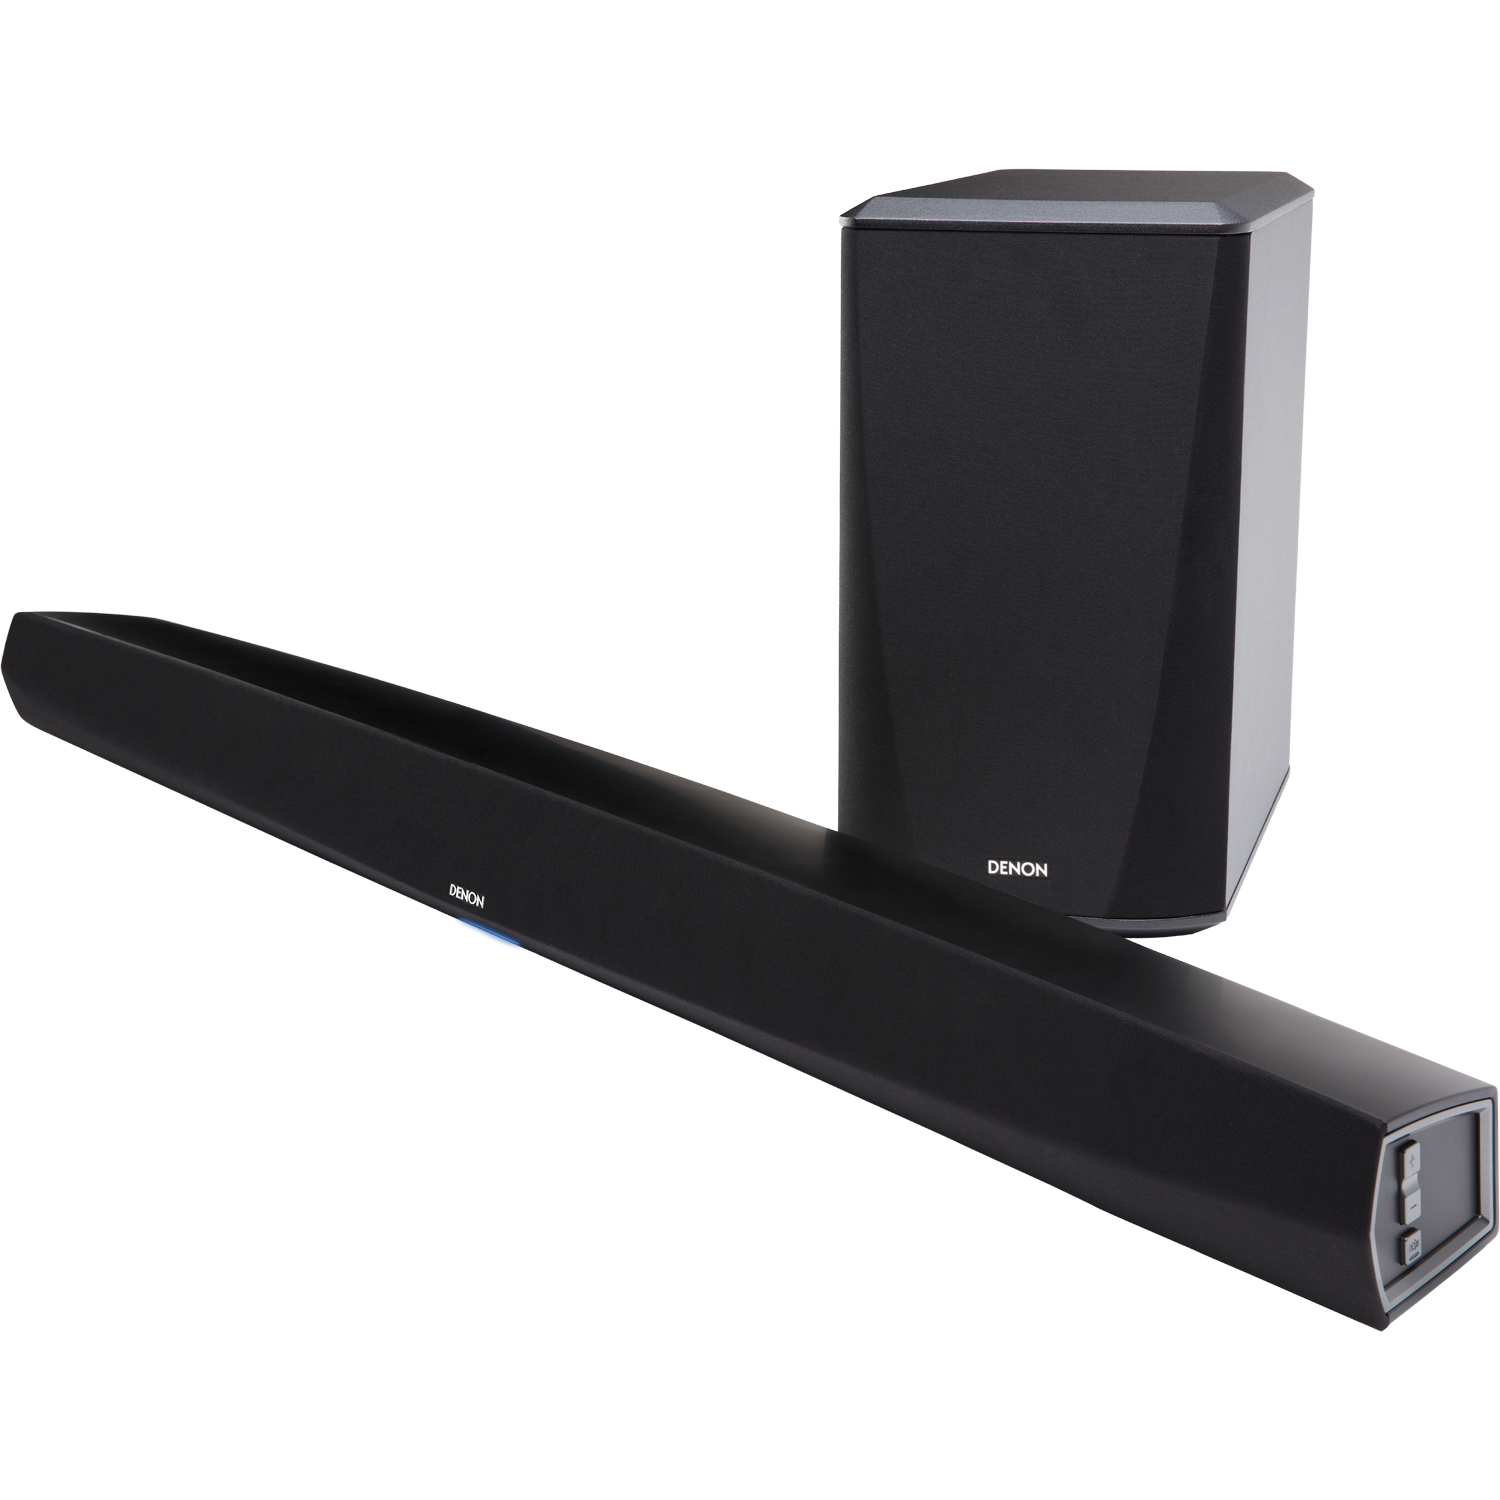 DENON DHT-S516H Sound Bar and Wireless Subwoofer with HEOS